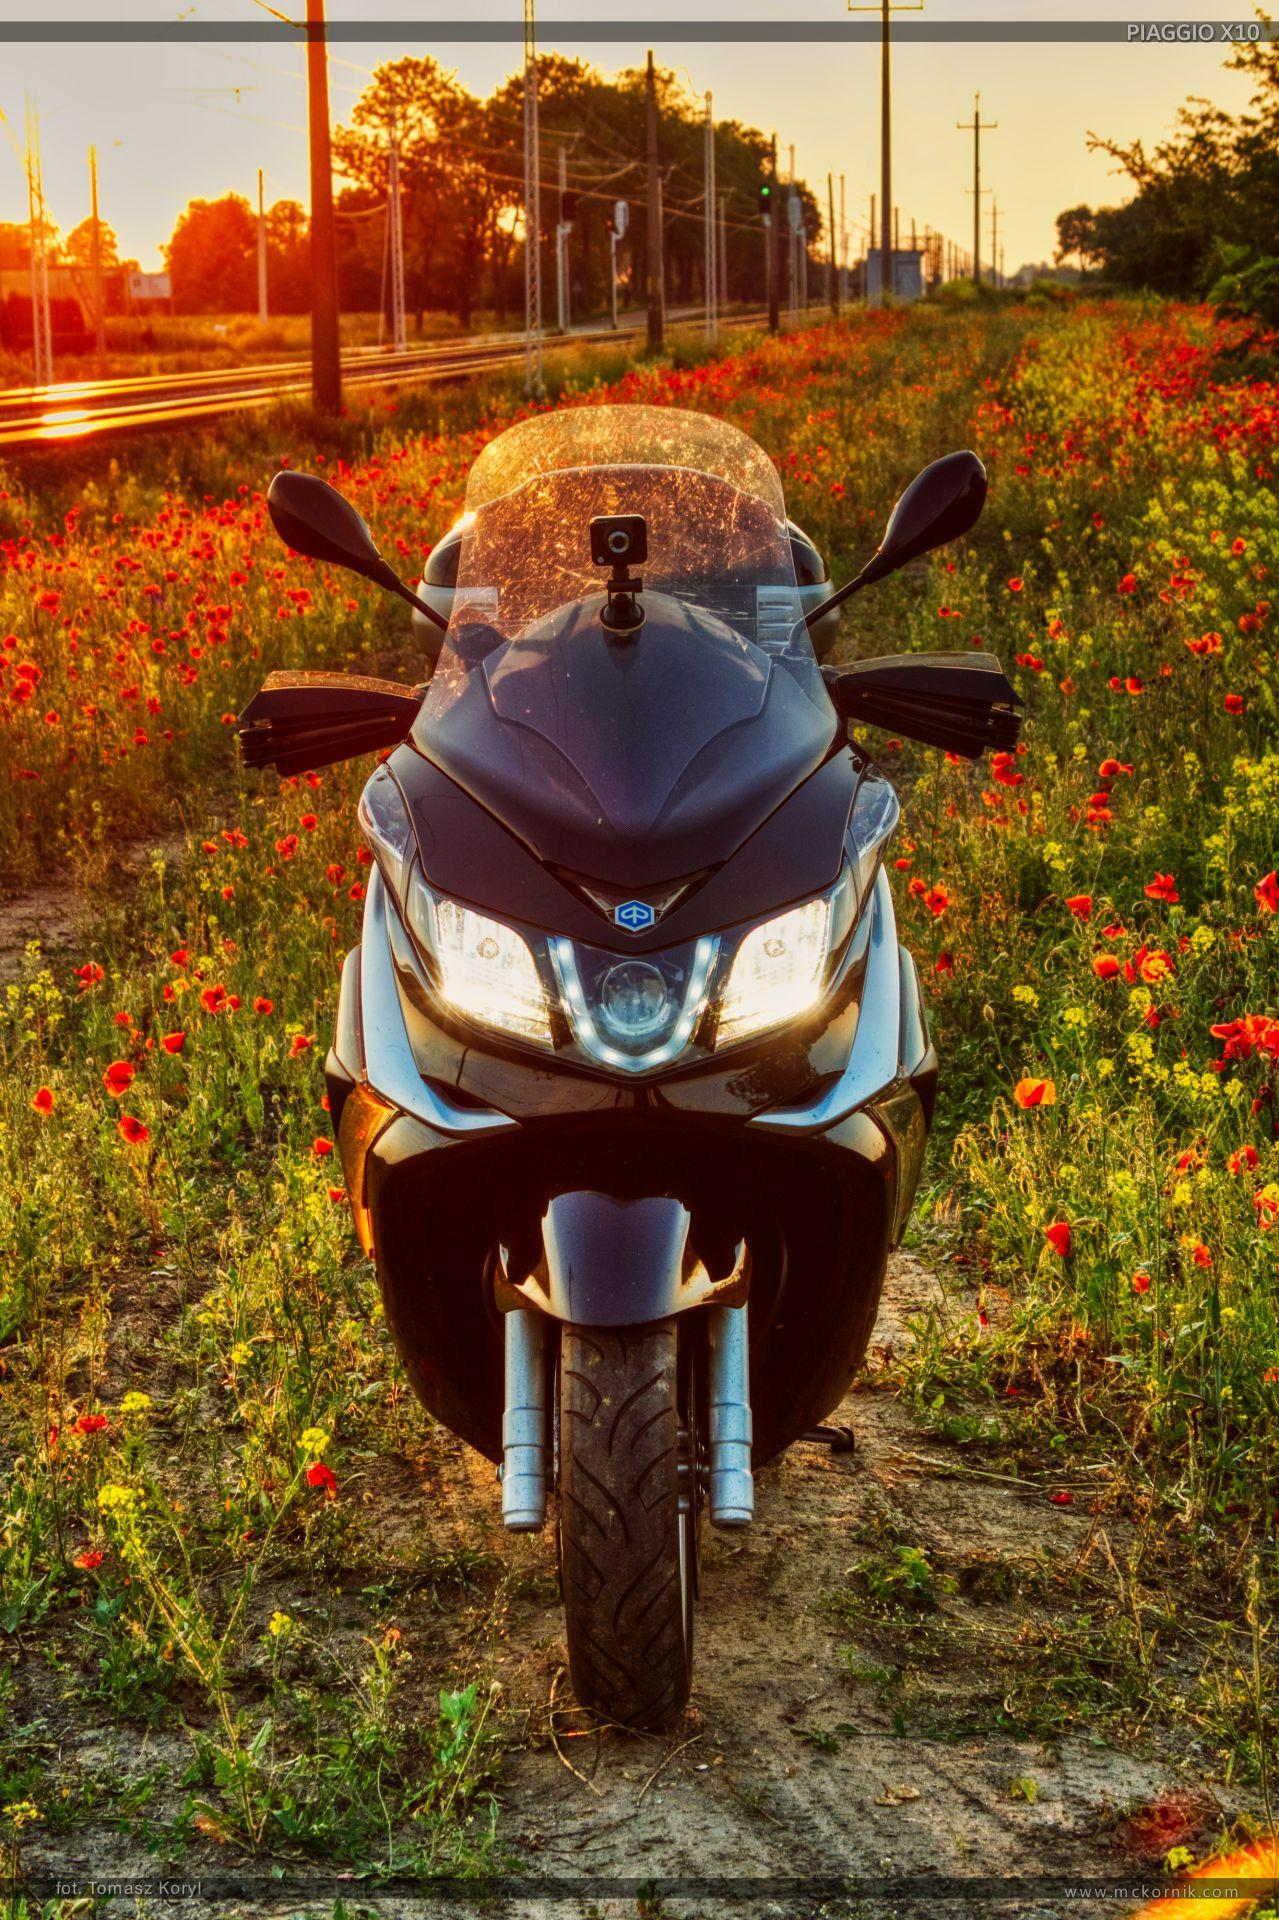 Sunset and Piaggio x10 350 motorcycle - mckornik.com